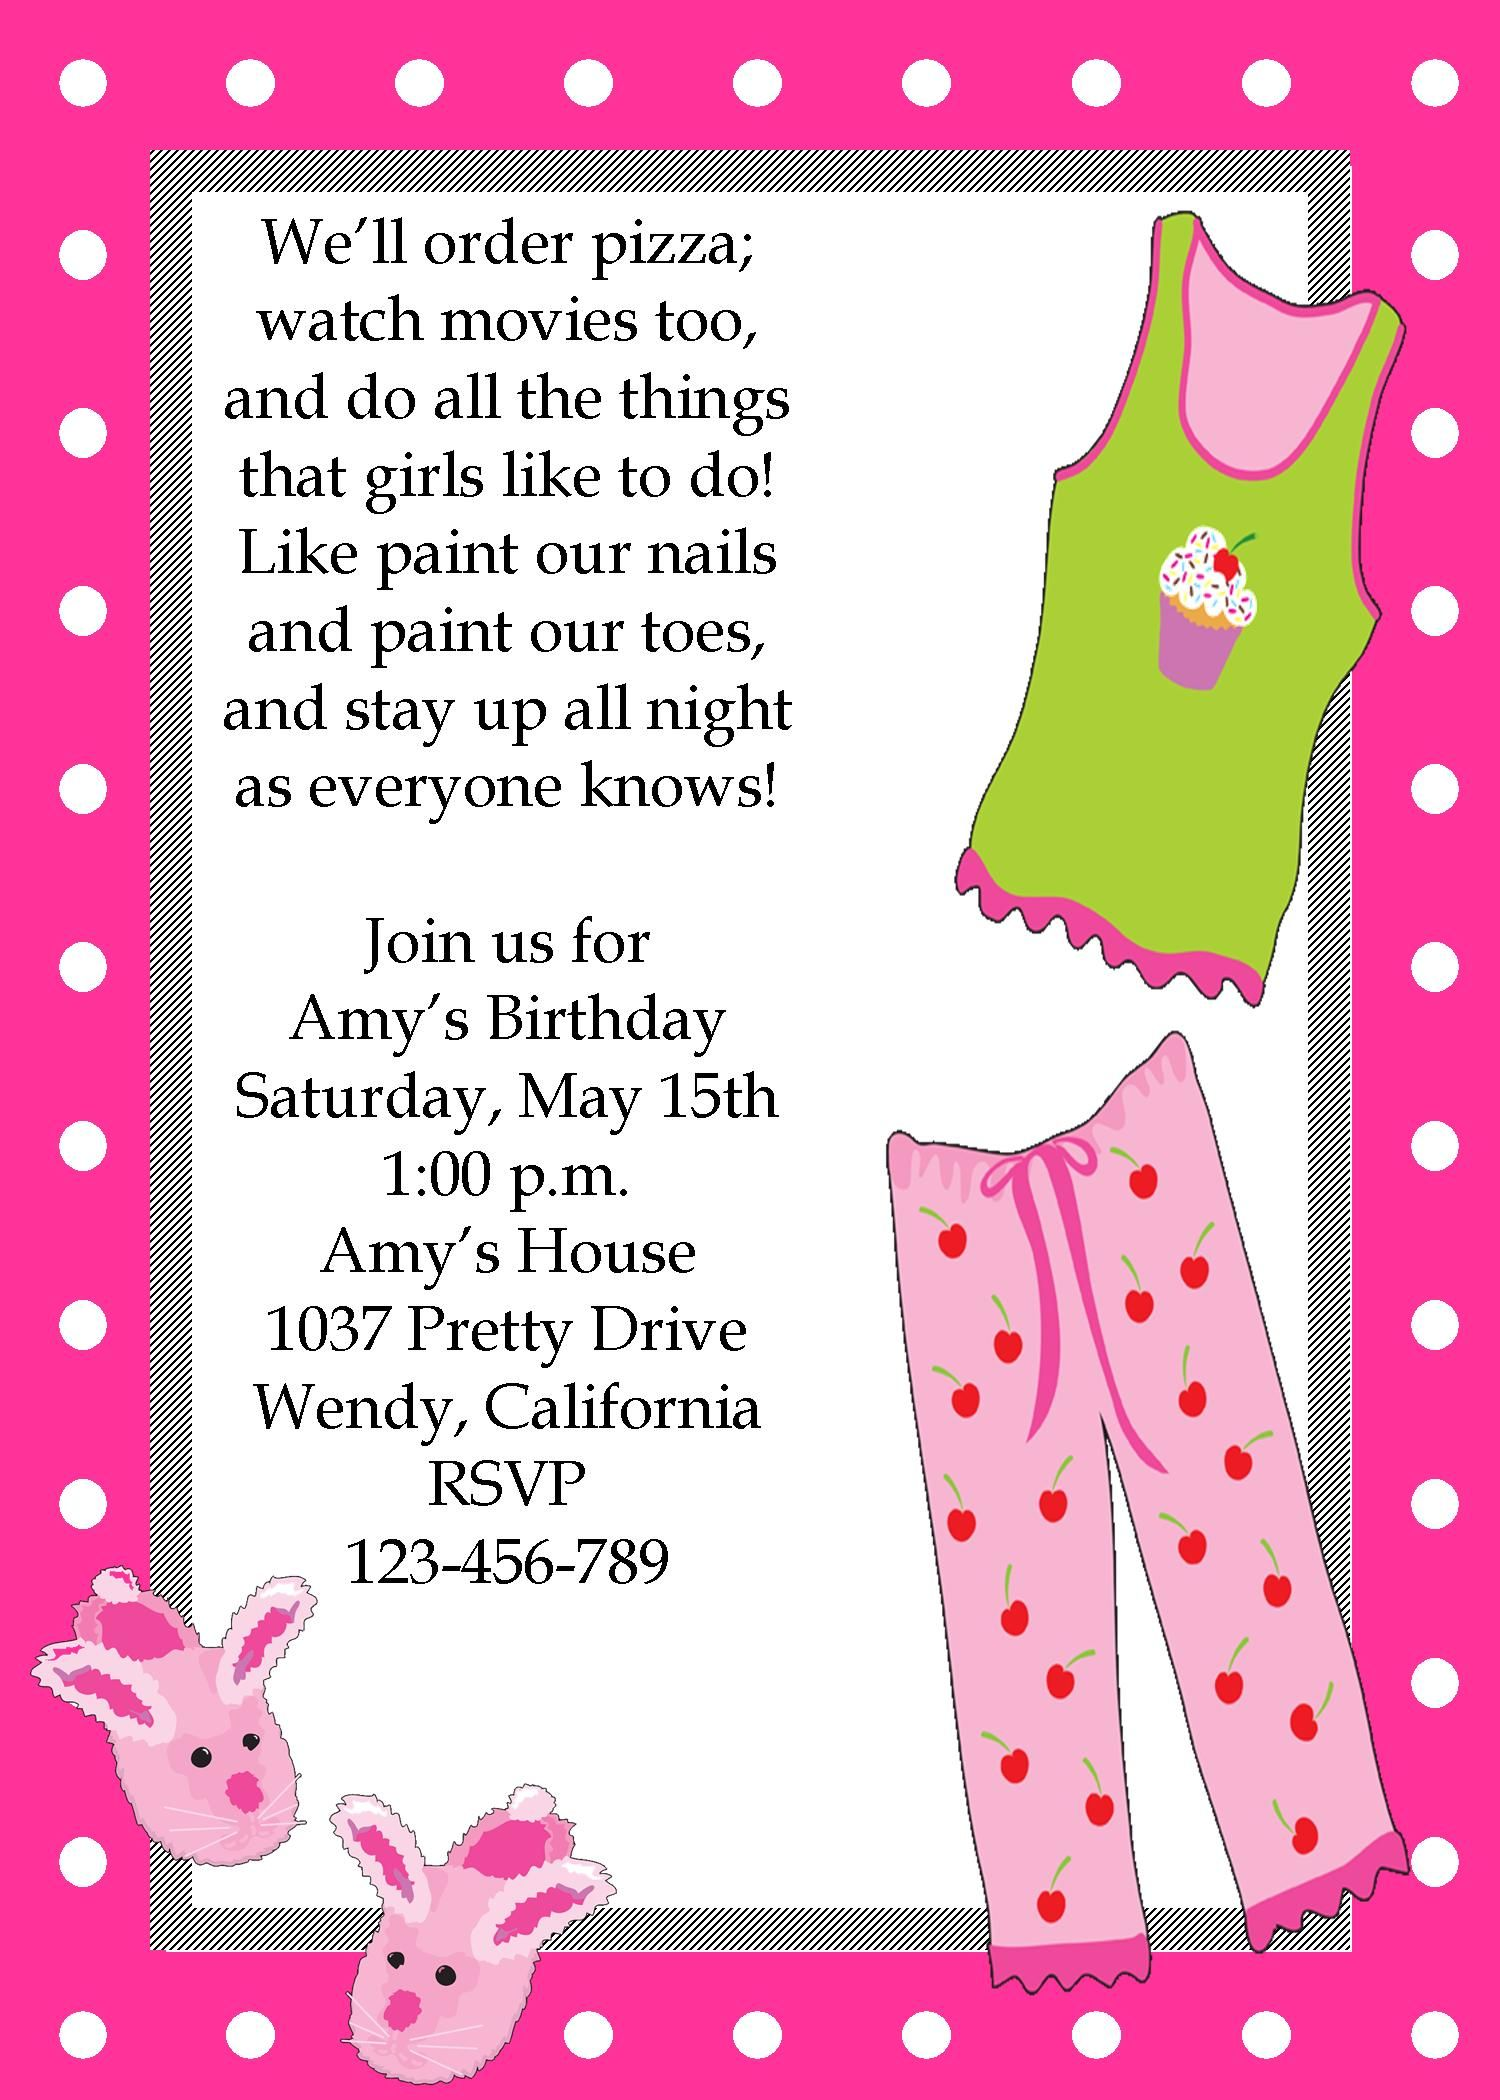 Girls sleepover pajama party invitation | My child/fun things to do | Pinterest | Girl sleepover ...